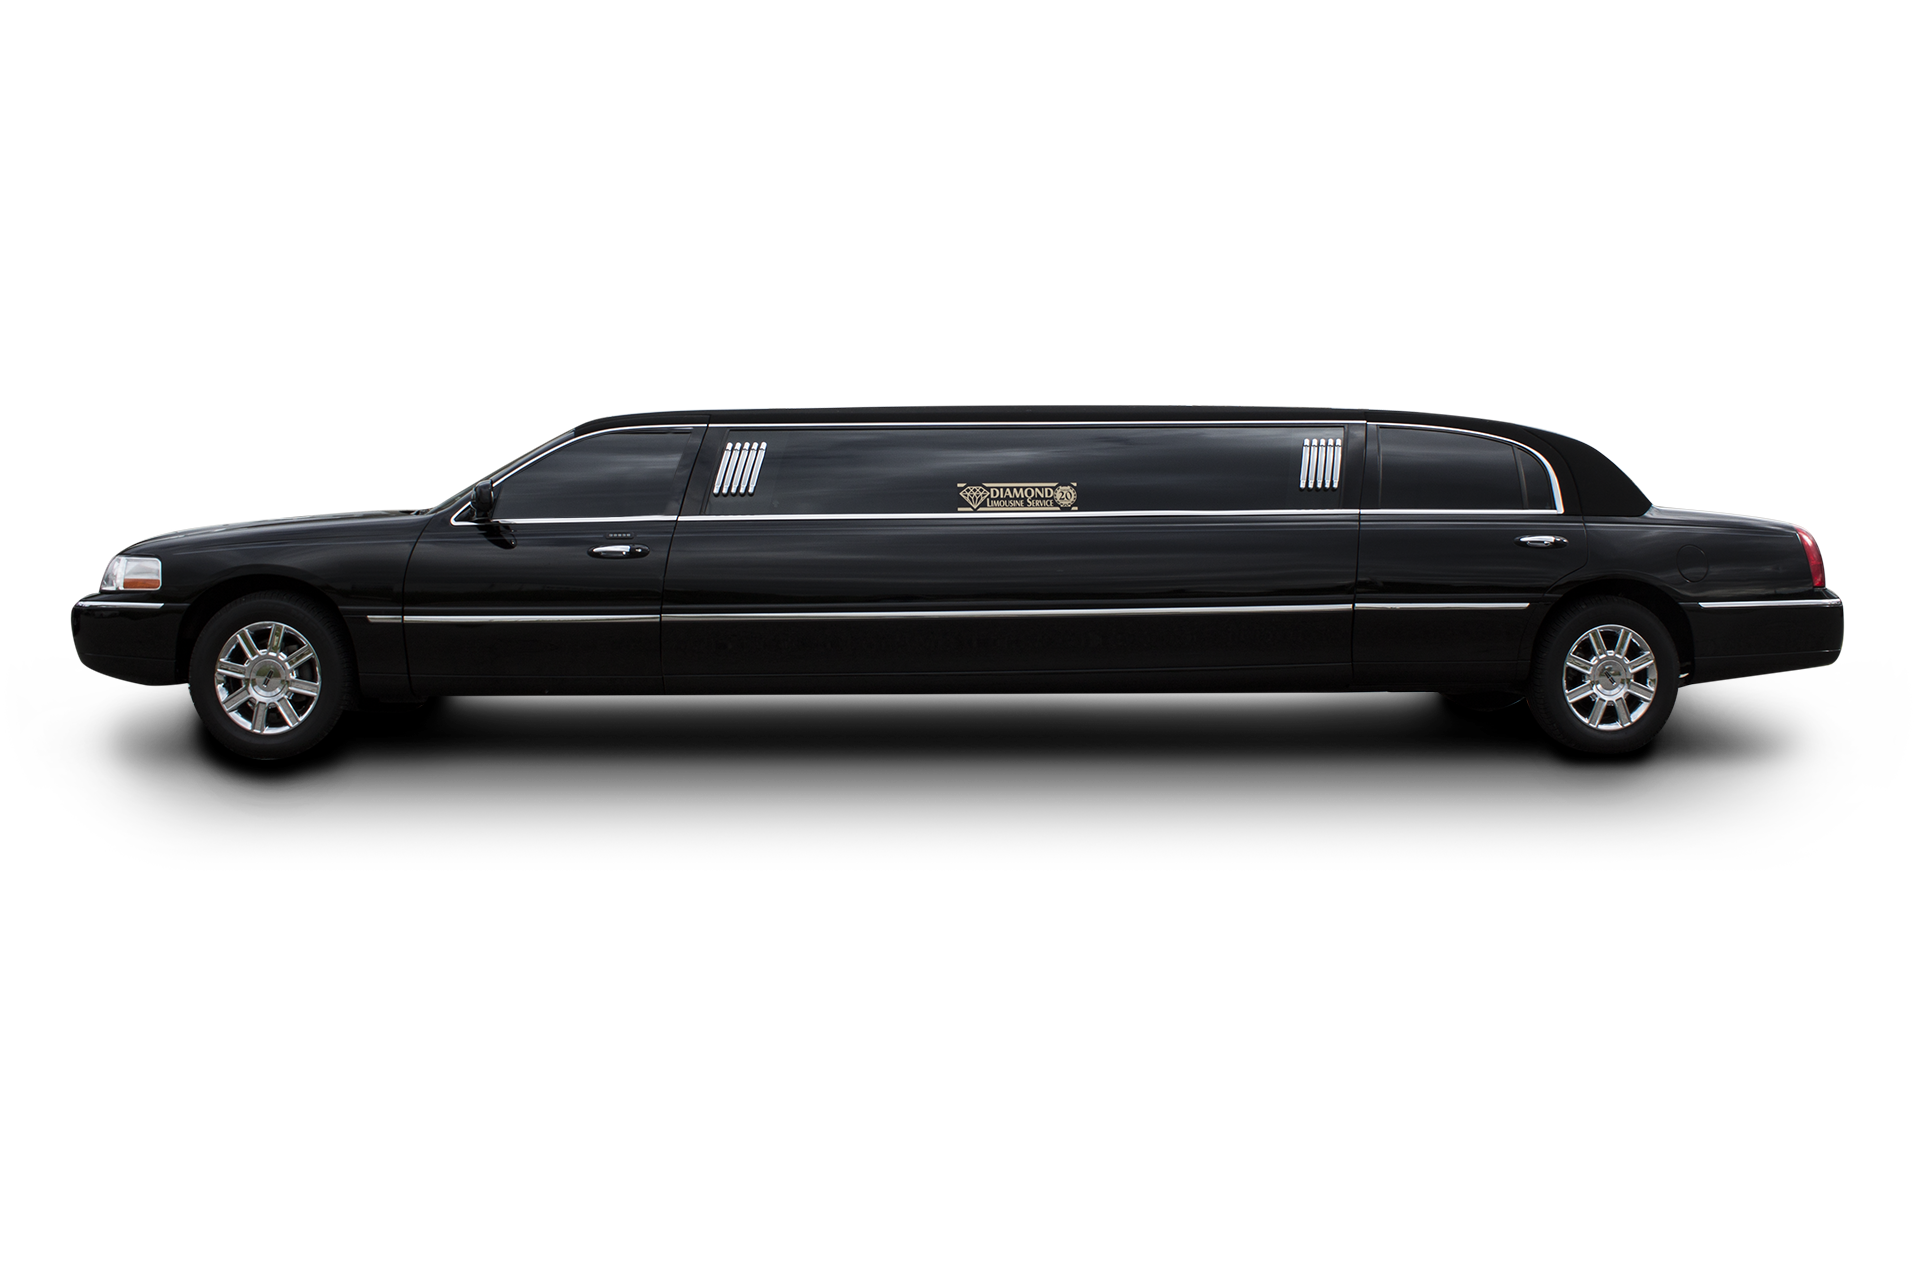 vehicle showroom diamond limousine. Black Bedroom Furniture Sets. Home Design Ideas